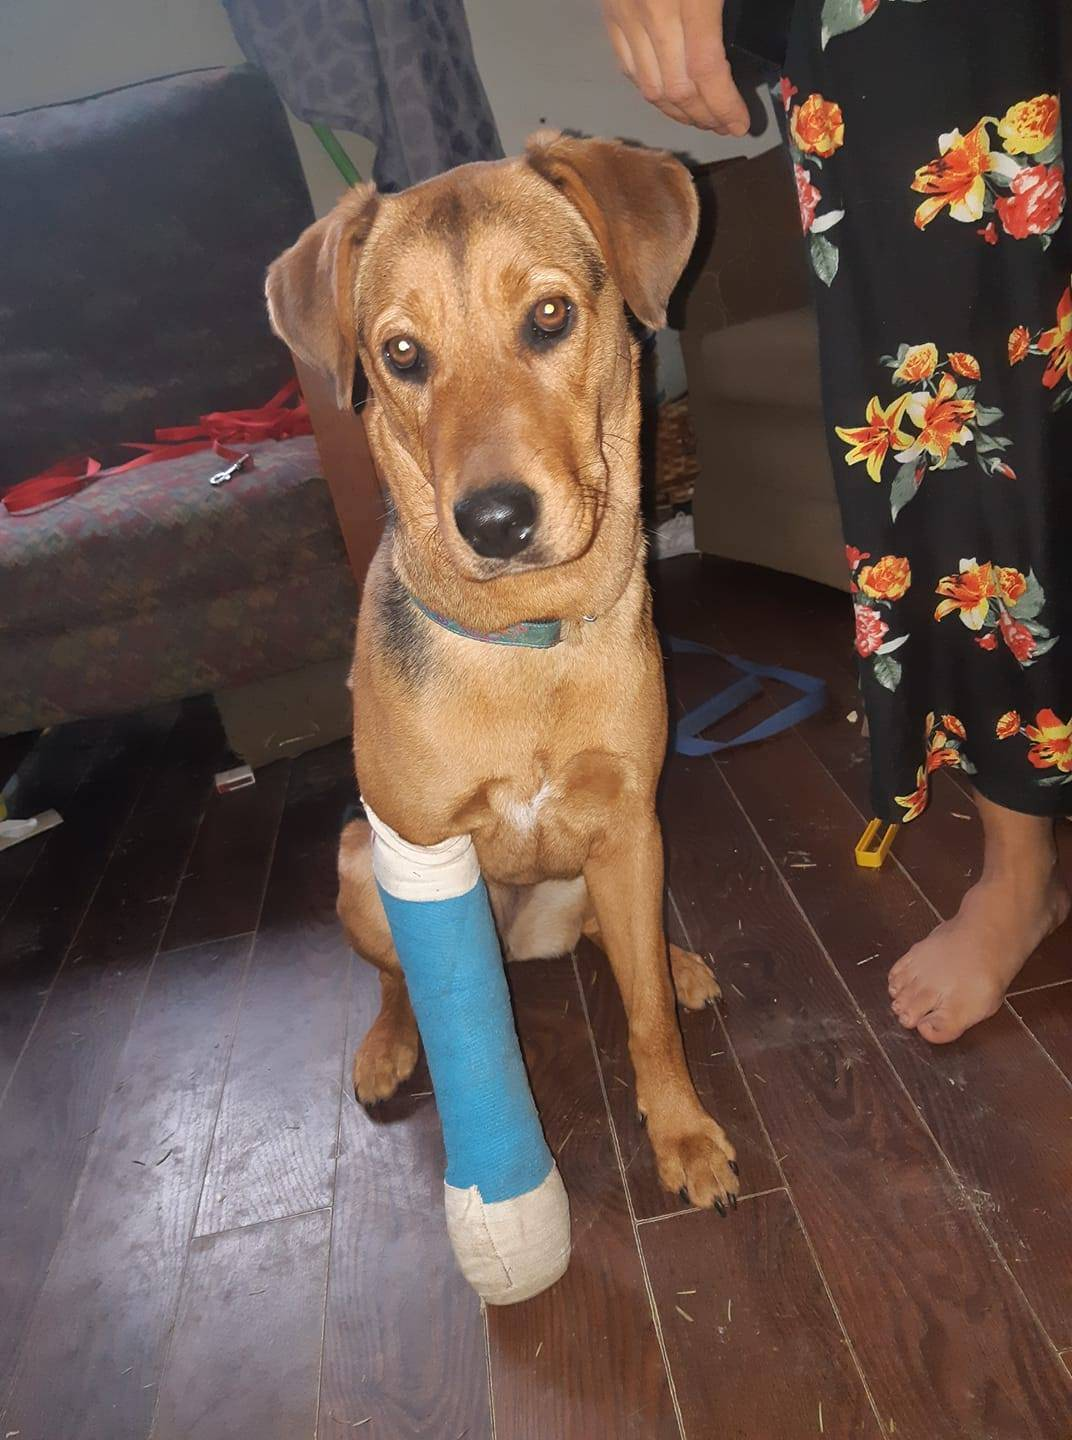 Bacon, an eight-month-old puppy, is in a splint after she was kicked by a random stranger on Christmas Day on Beecher Bay Reserve in East Sooke. (Facebook/Ronnie Marie Tejano)